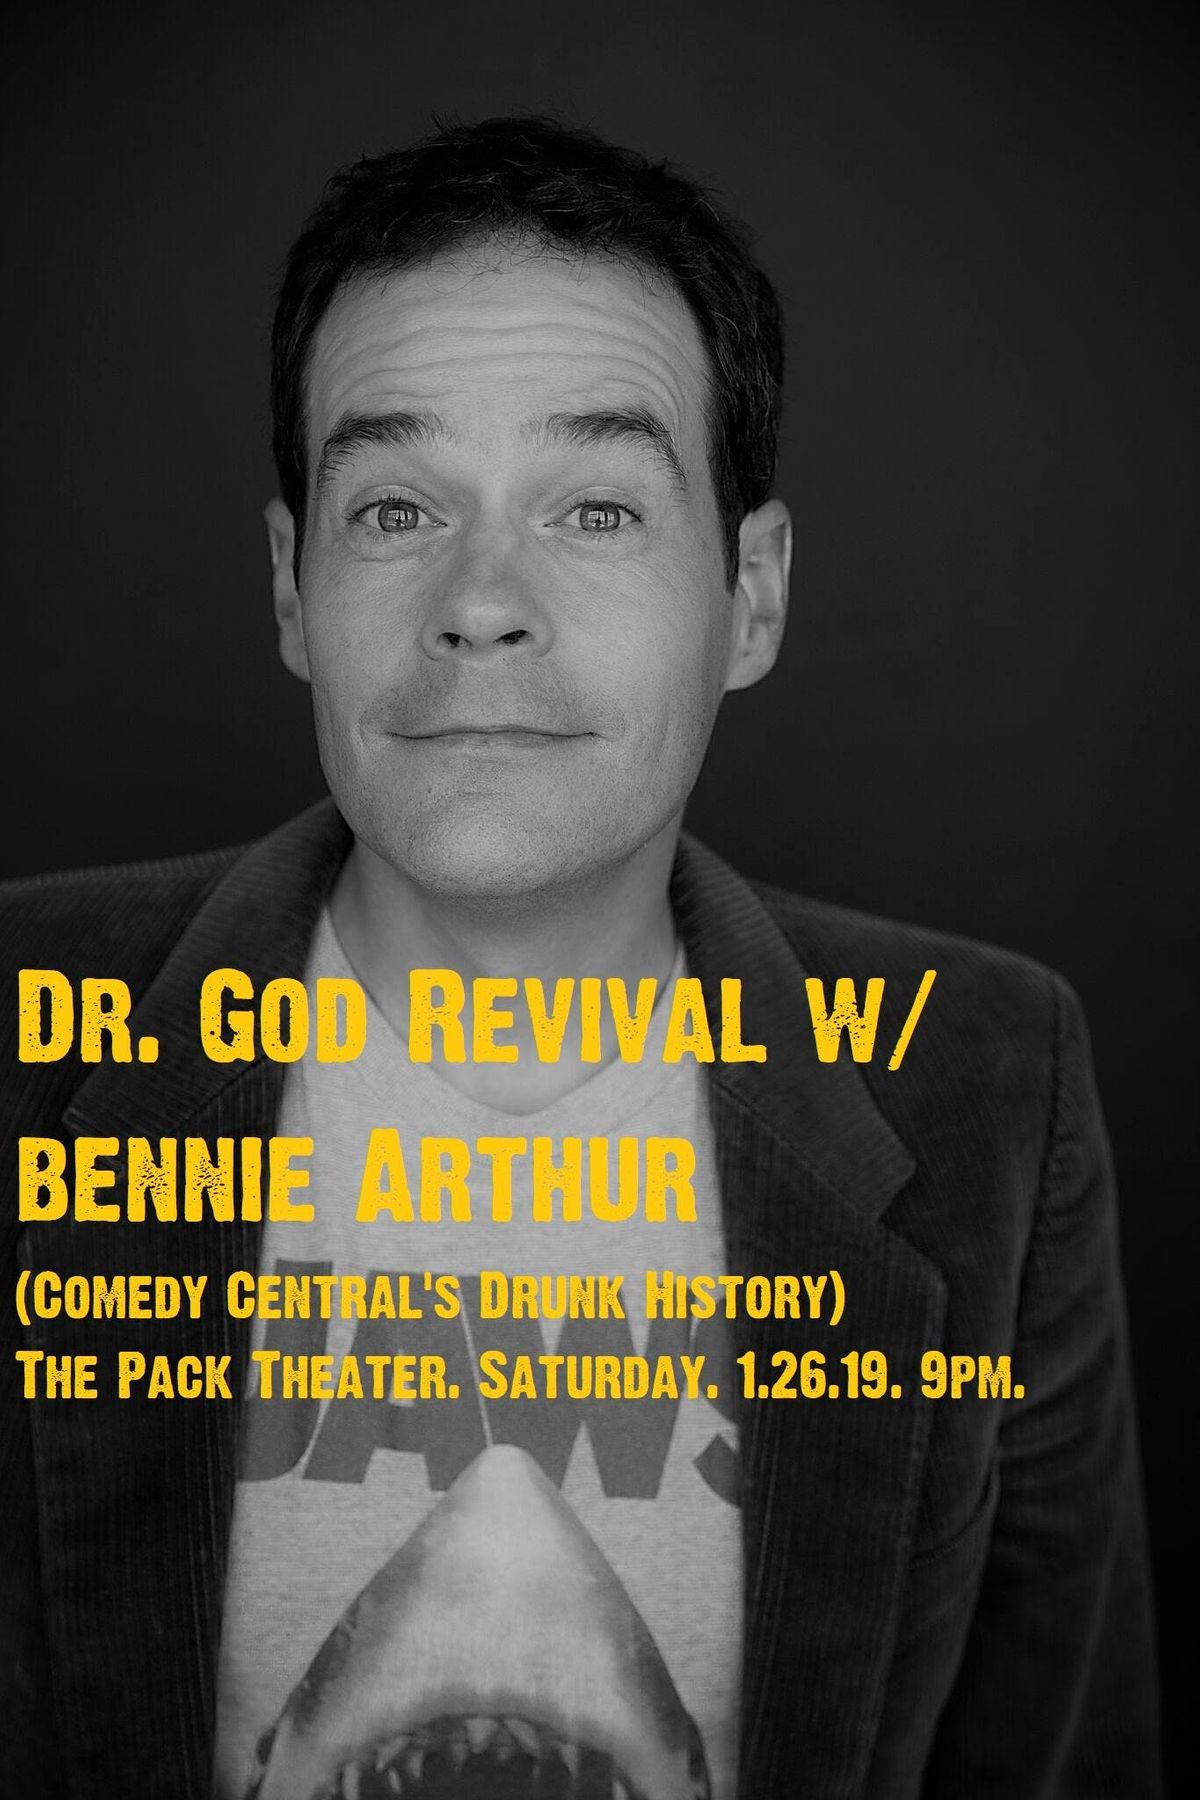 Dr. God Revival with Bennie Arthur (Comedy Centrals Drunk History)